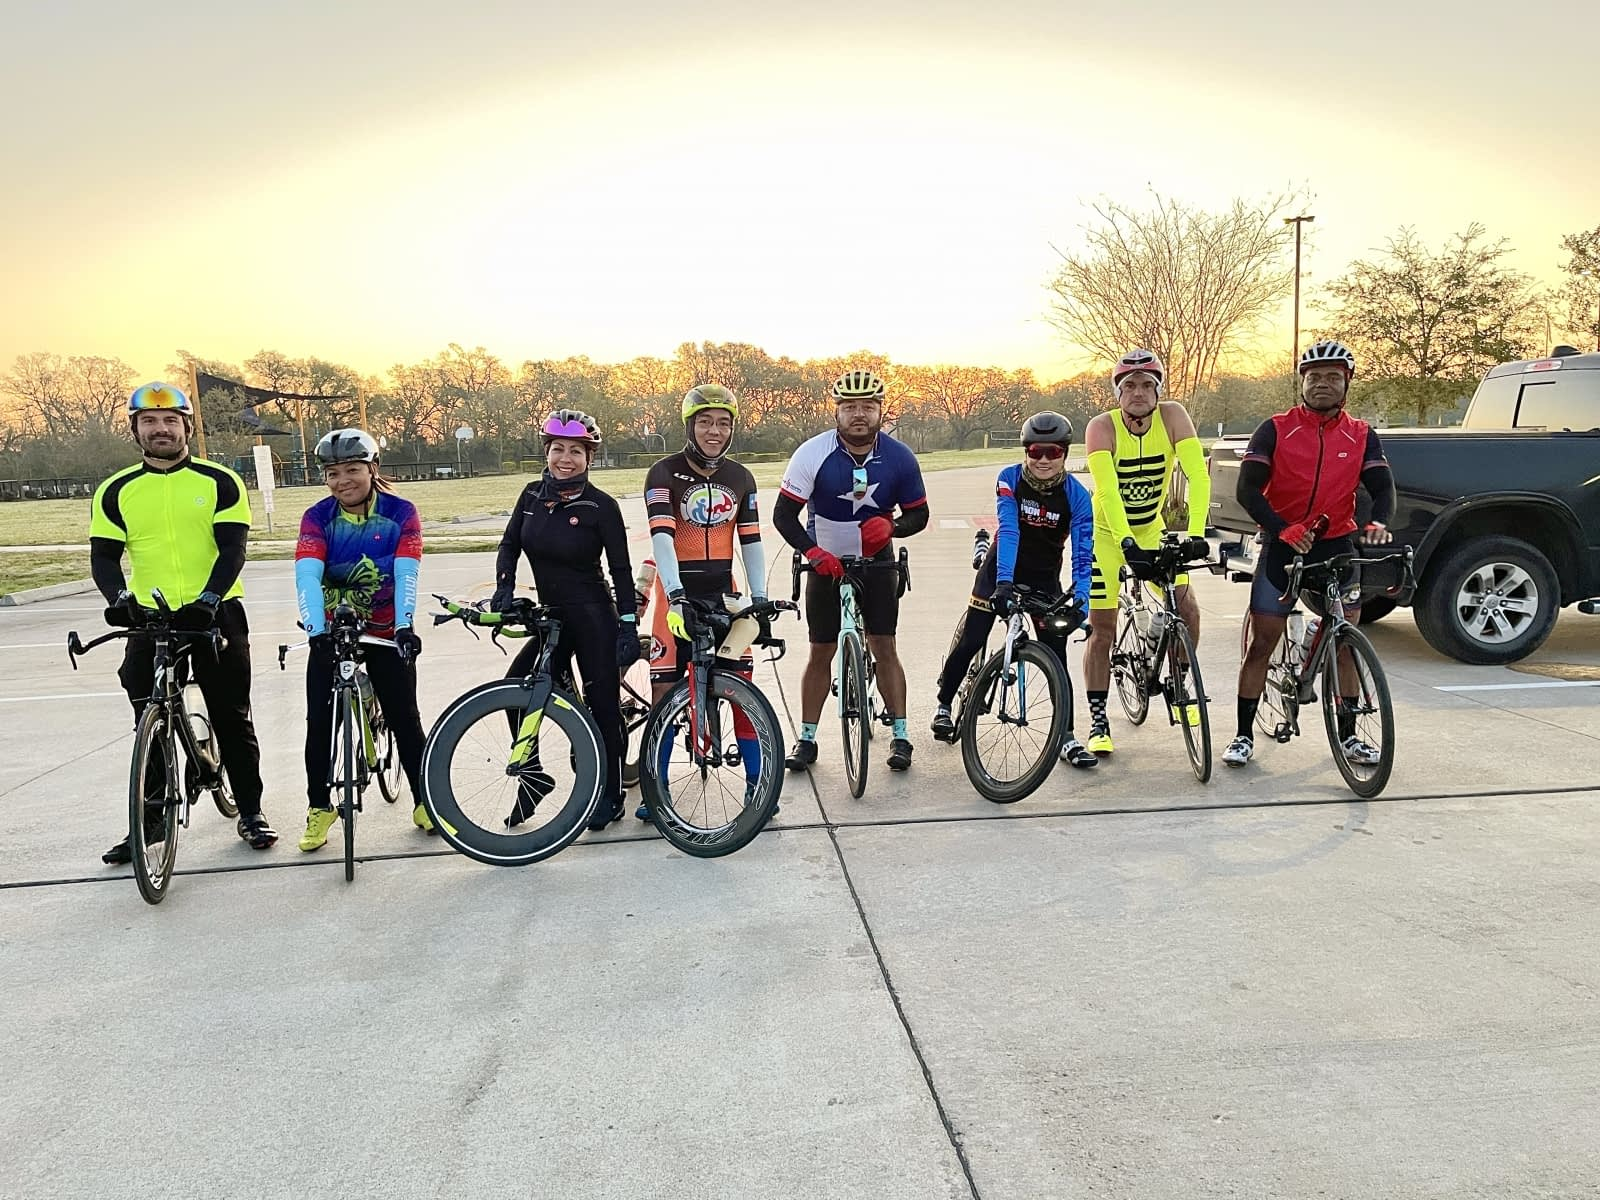 Pearland Triathlong Racing Club pre-ride